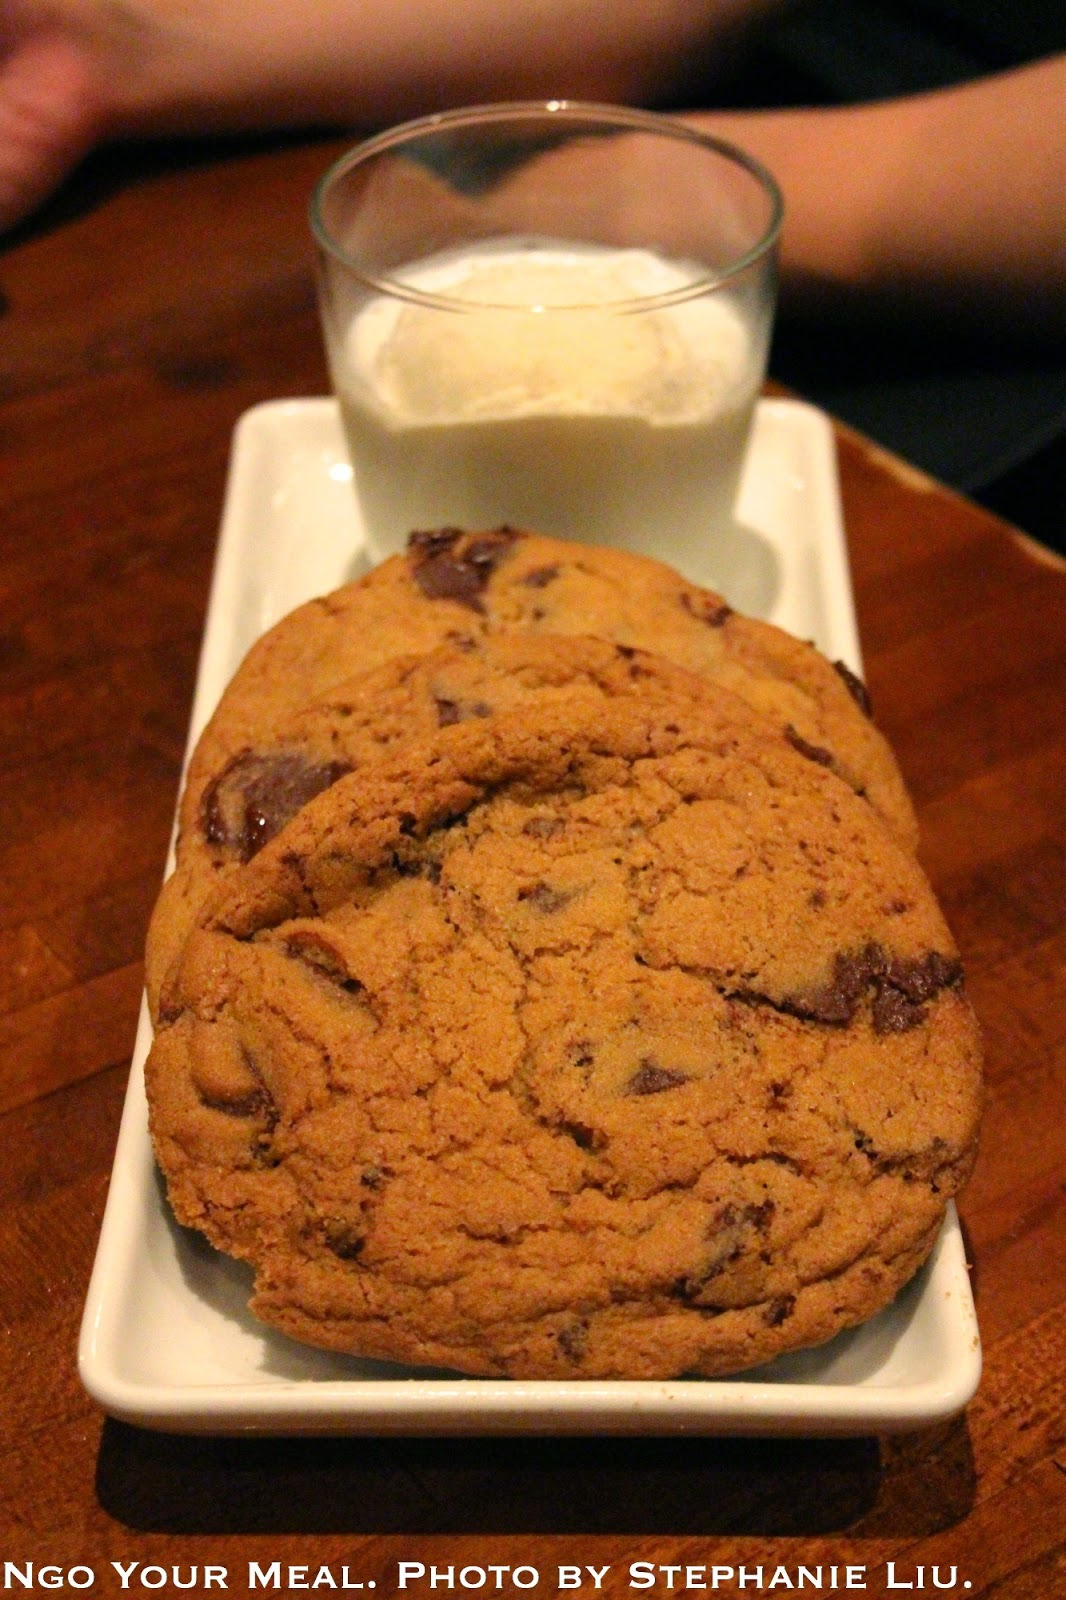 Milk & Cookies: warm chocolate chip cookies, vanilla ice cream, and ice cold milk at Jane